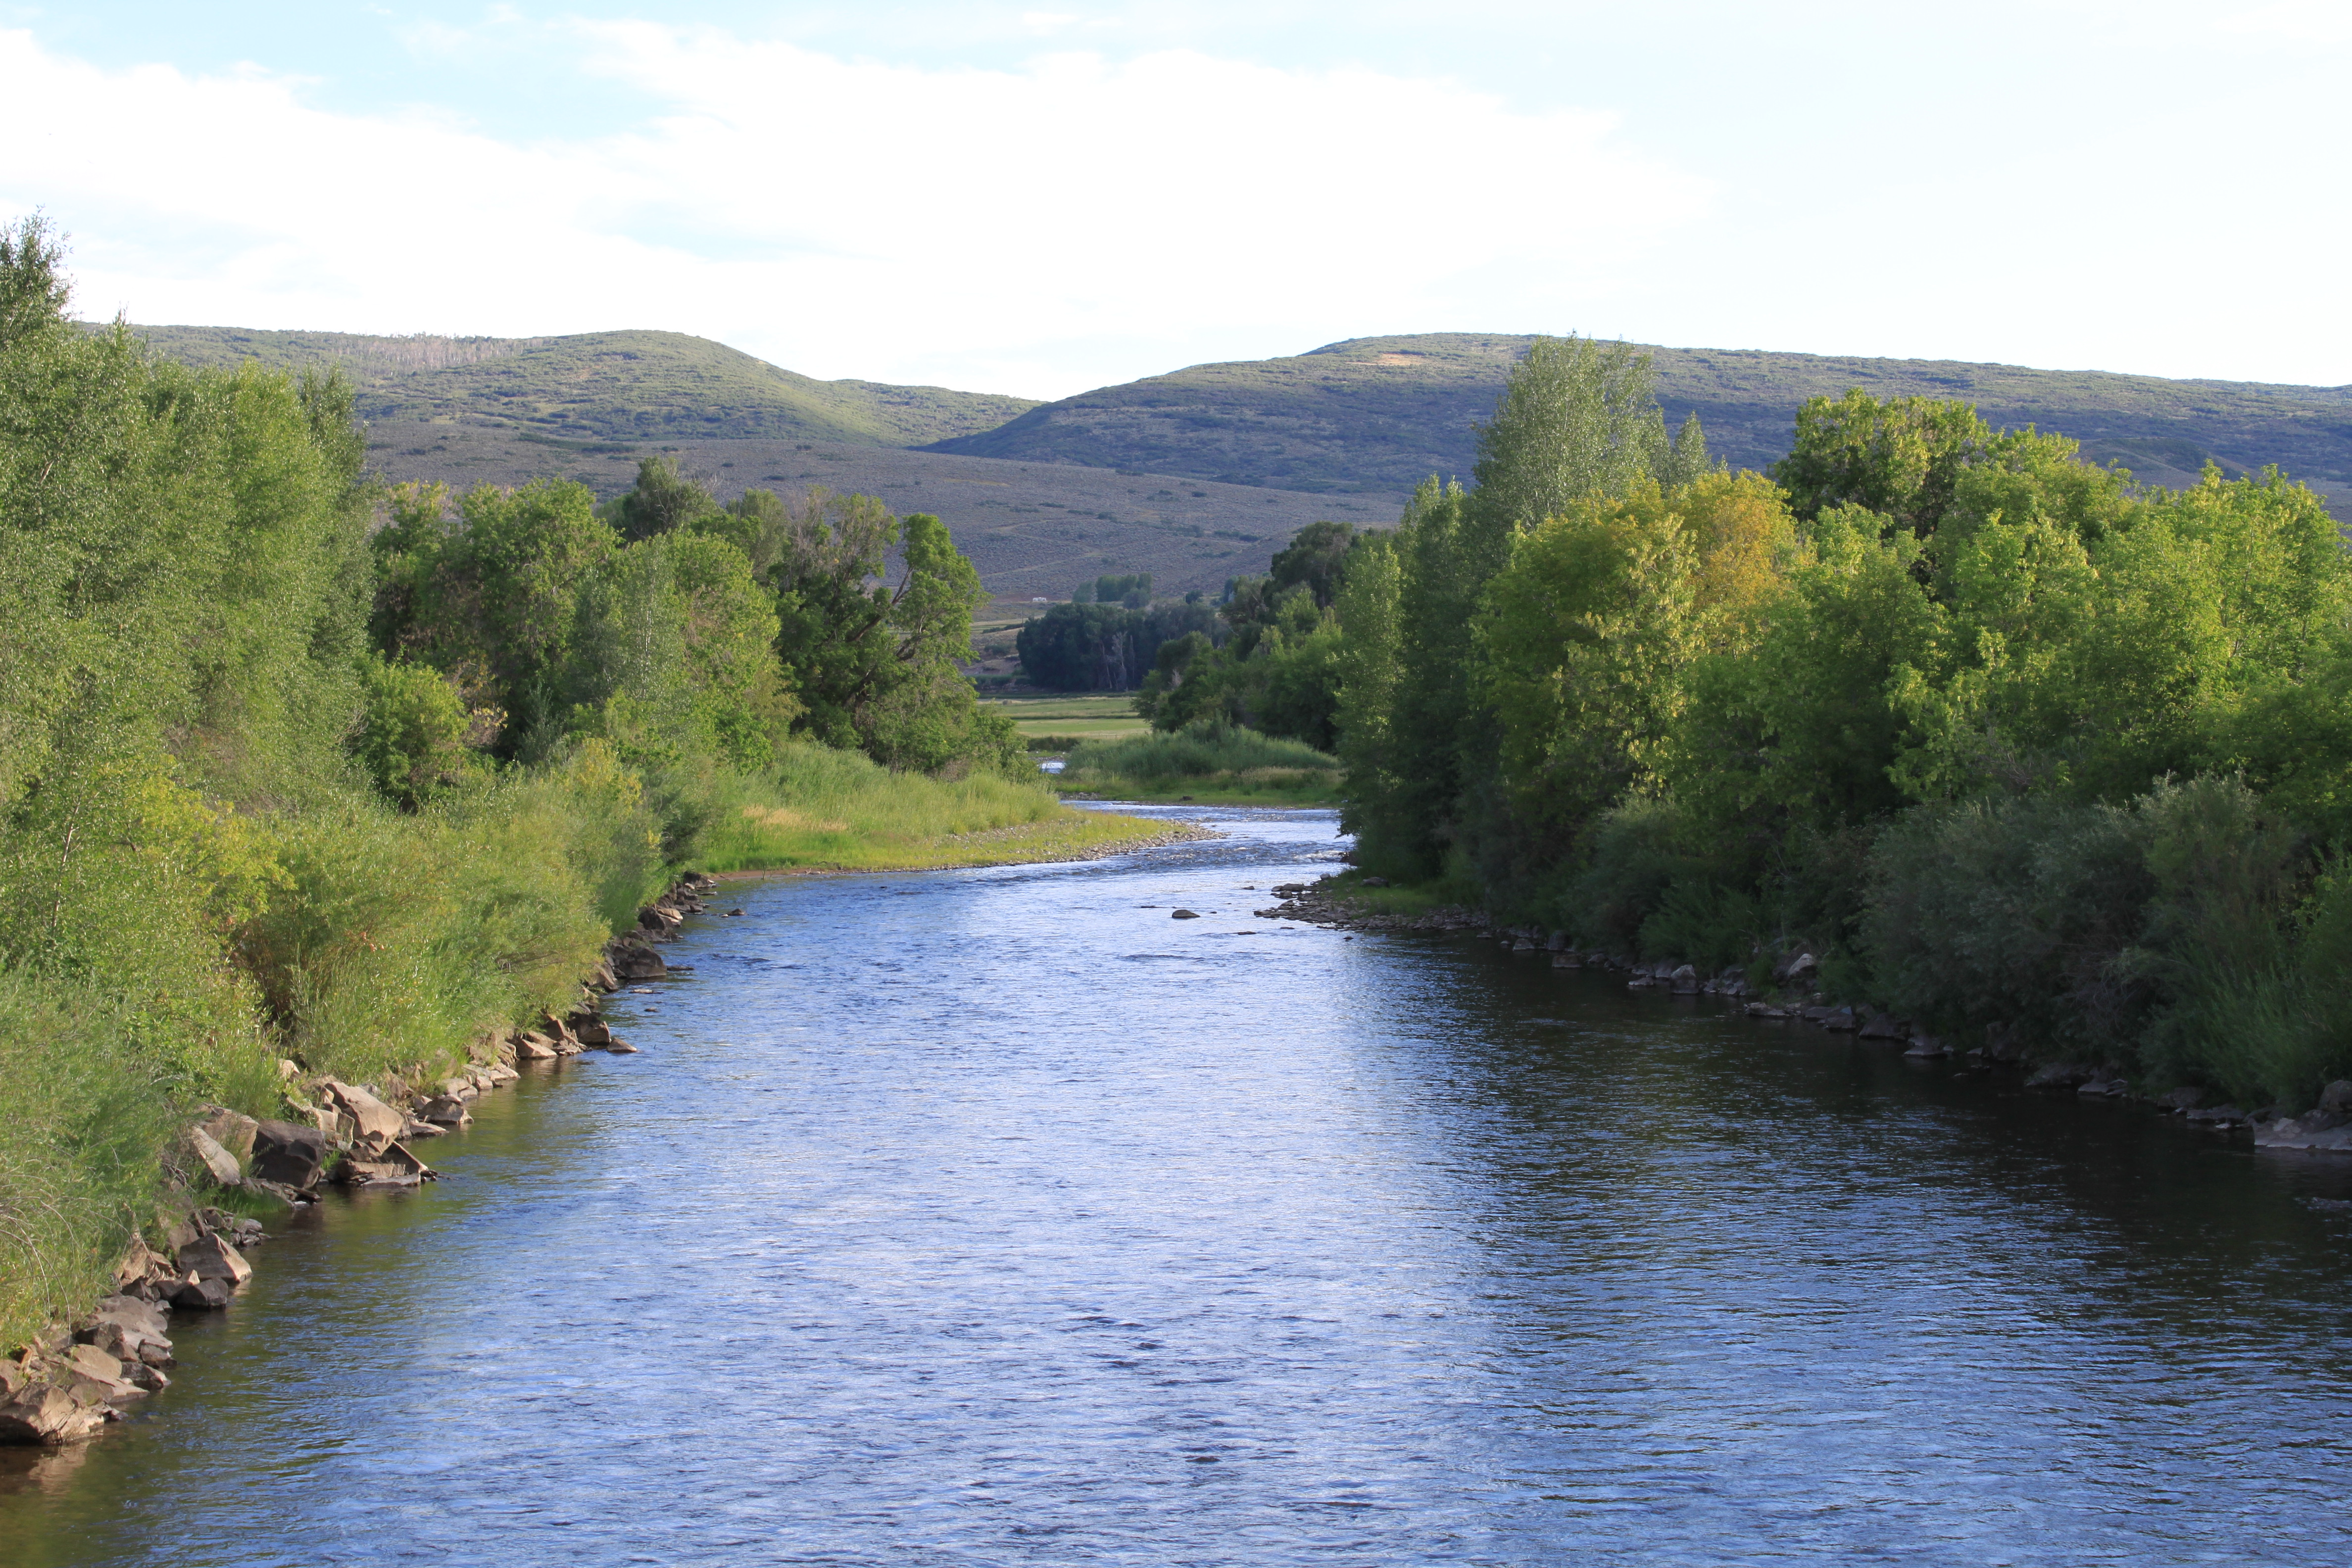 The White River, Meeker, CO